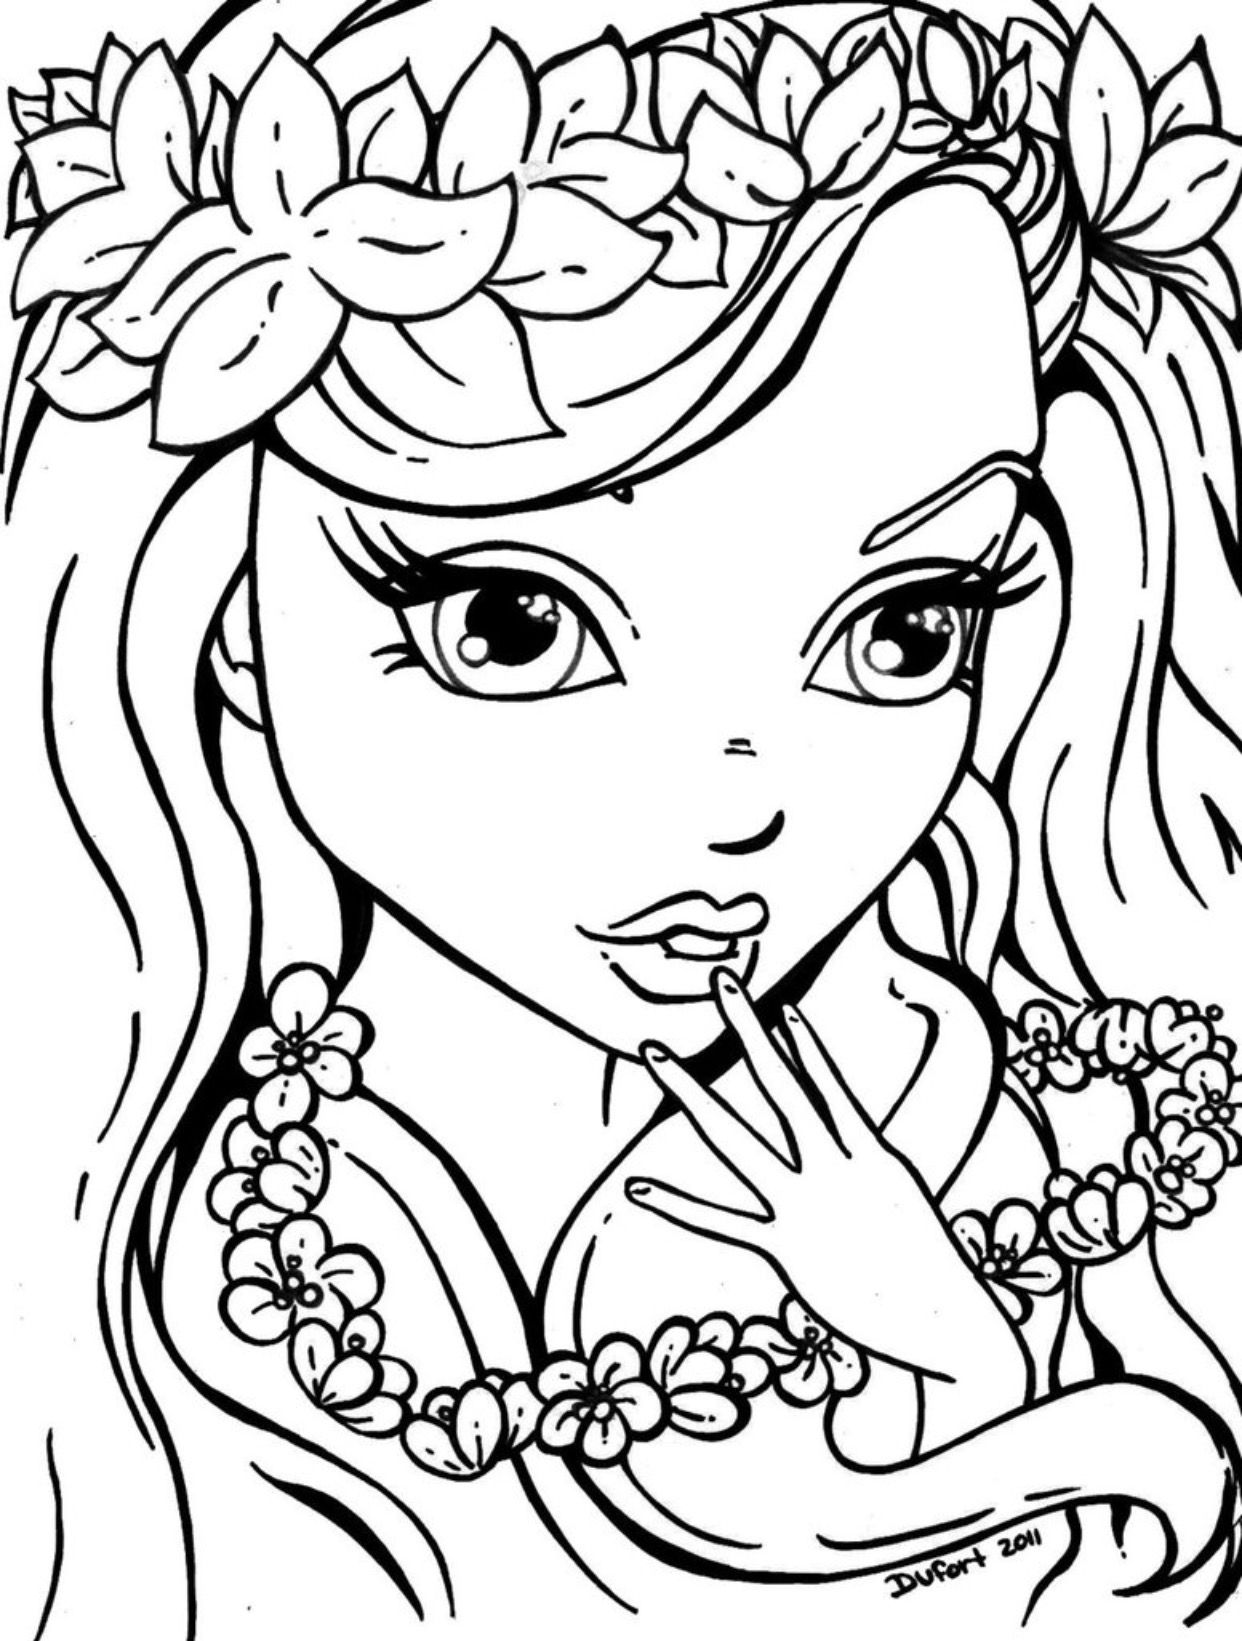 Pin by lulu on noel | Pinterest | Hawaiian, Coloring books and Adult ...